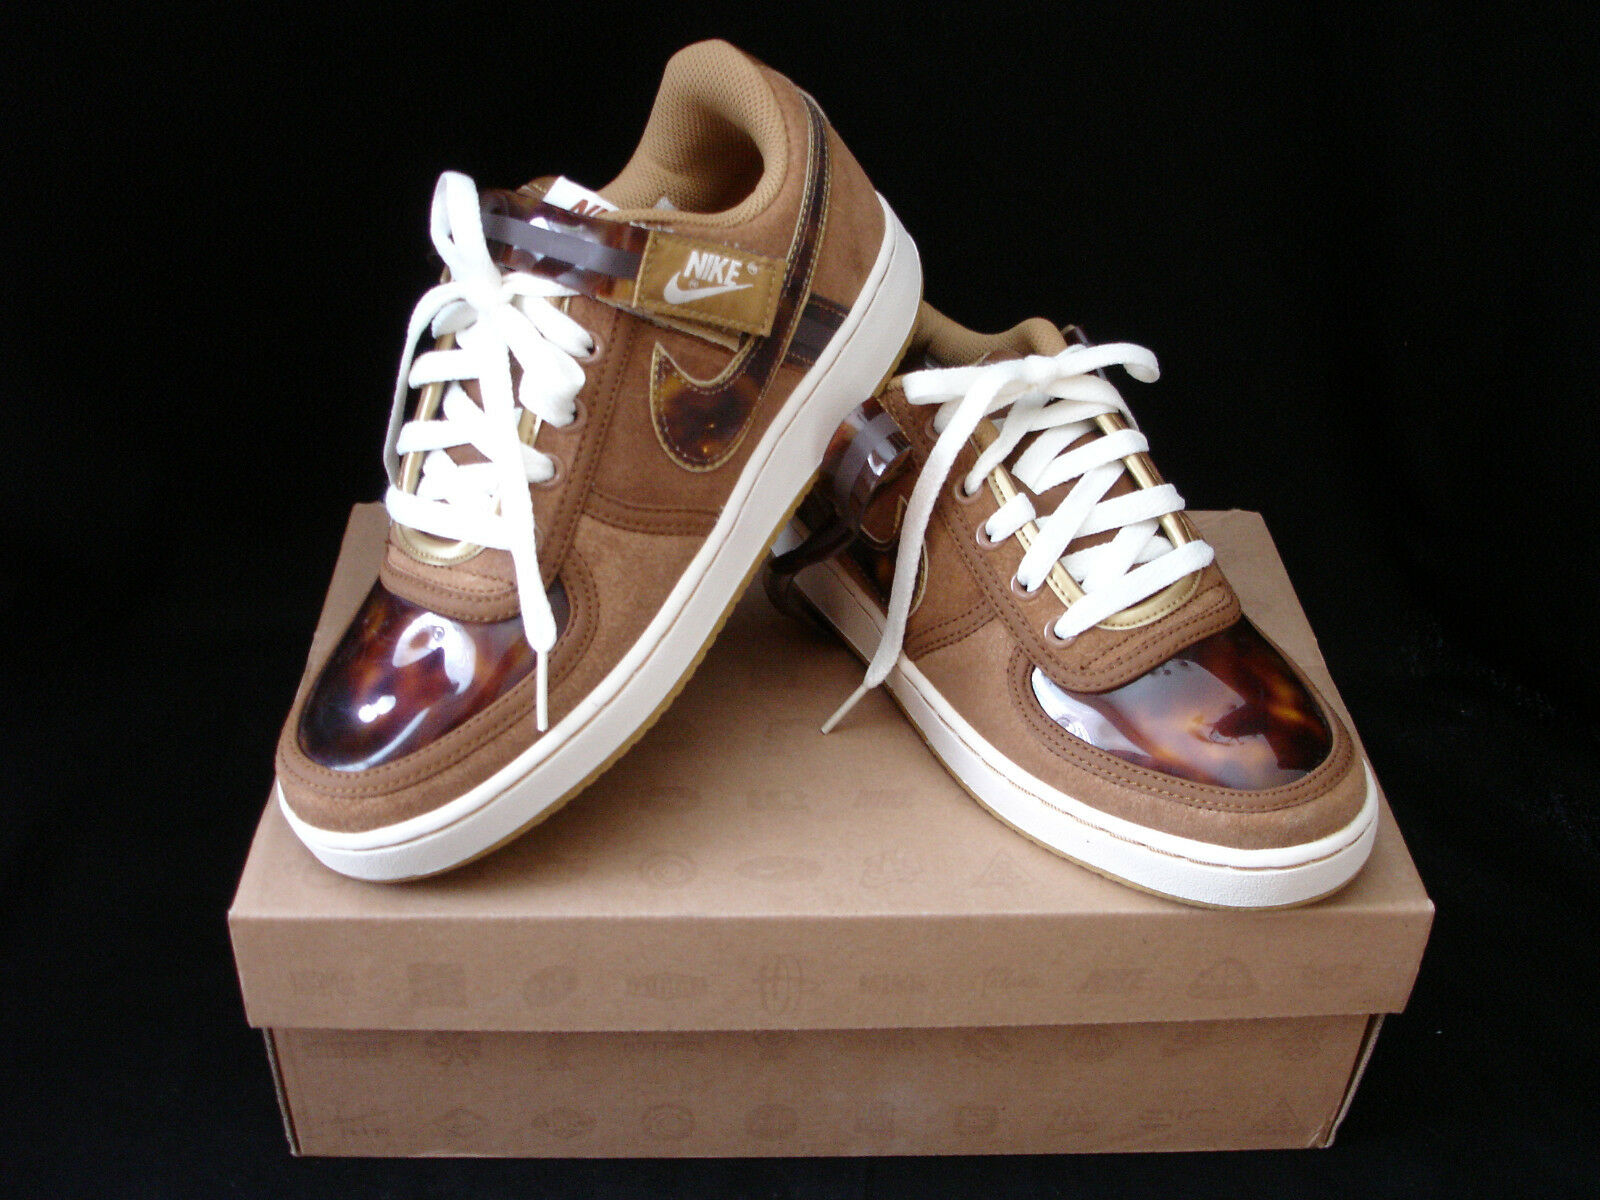 SIZE 7 OR SIZE 7 1/2 WOMANS VANDAL LOW BY NIKE